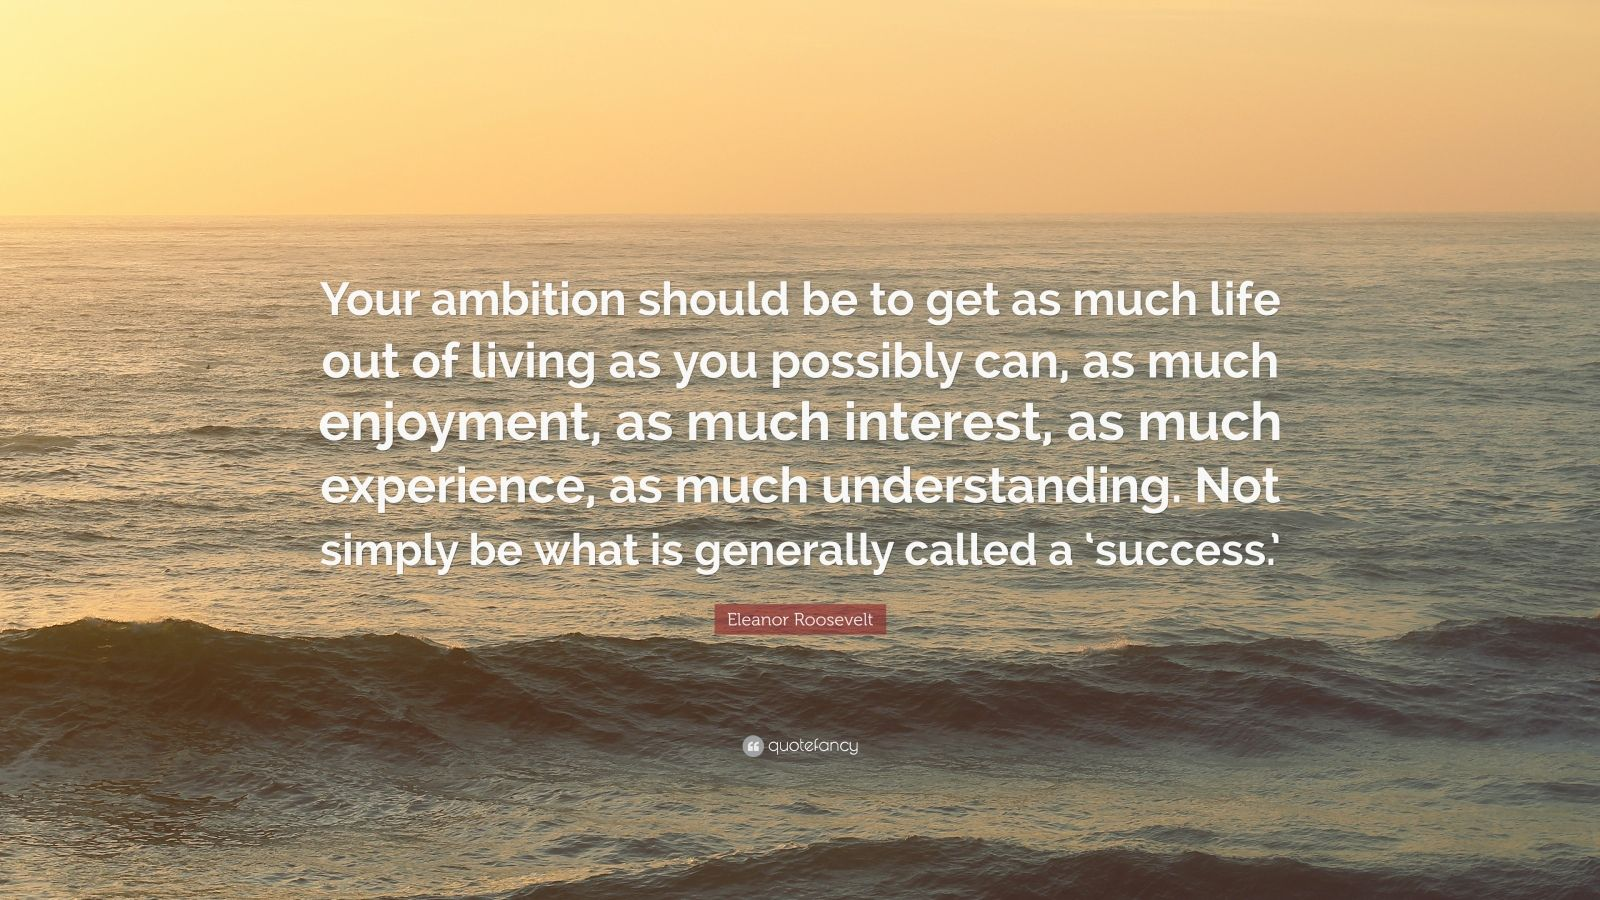 "Eleanor Roosevelt Quote: ""Your ambition should be to get as much life out of living as you possibly can, as much enjoyment, as much interest, as much experience, as much understanding. Not simply be what is generally called a 'success.'"""